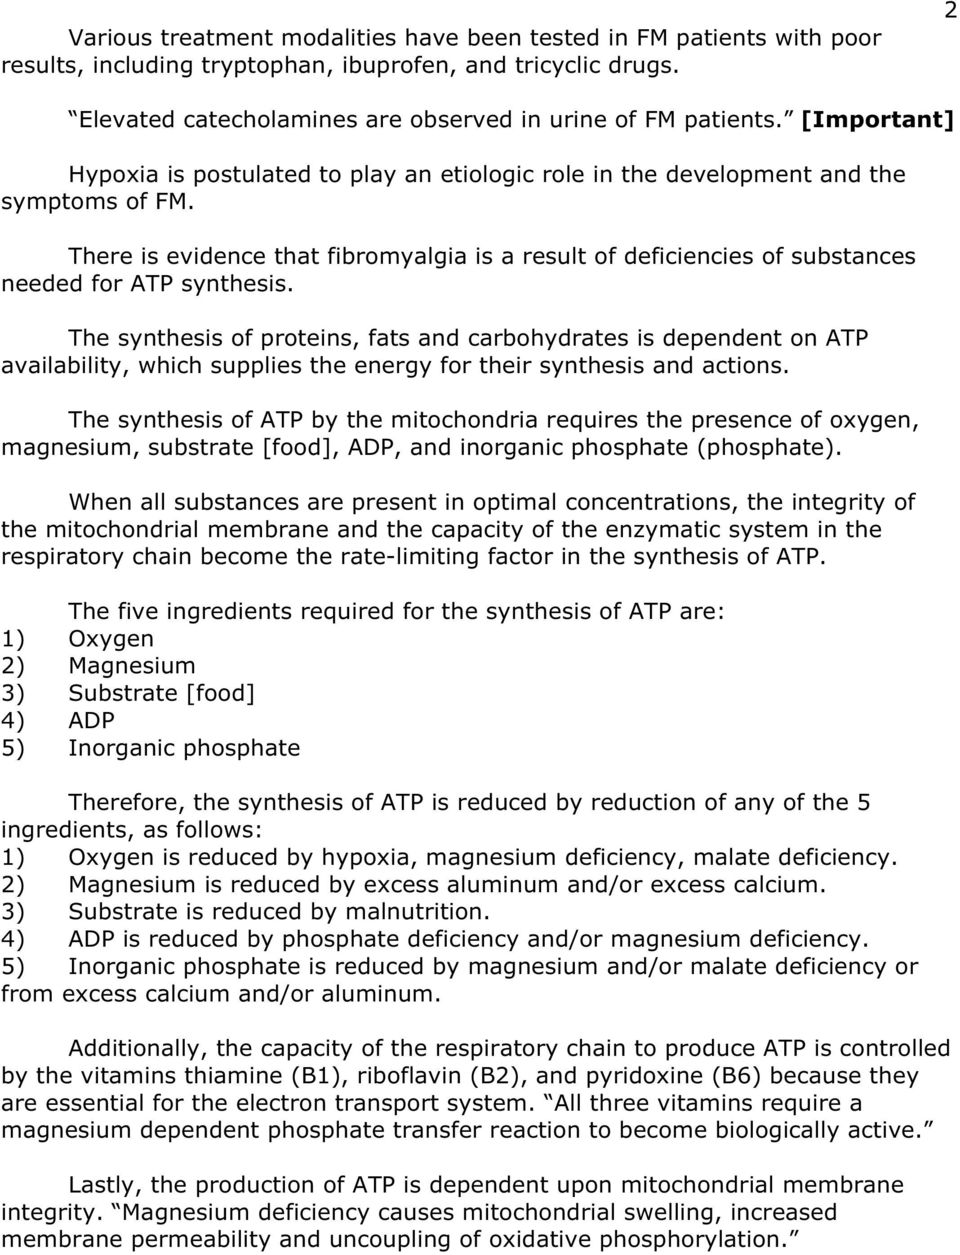 There is evidence that fibromyalgia is a result of deficiencies of substances needed for ATP synthesis.